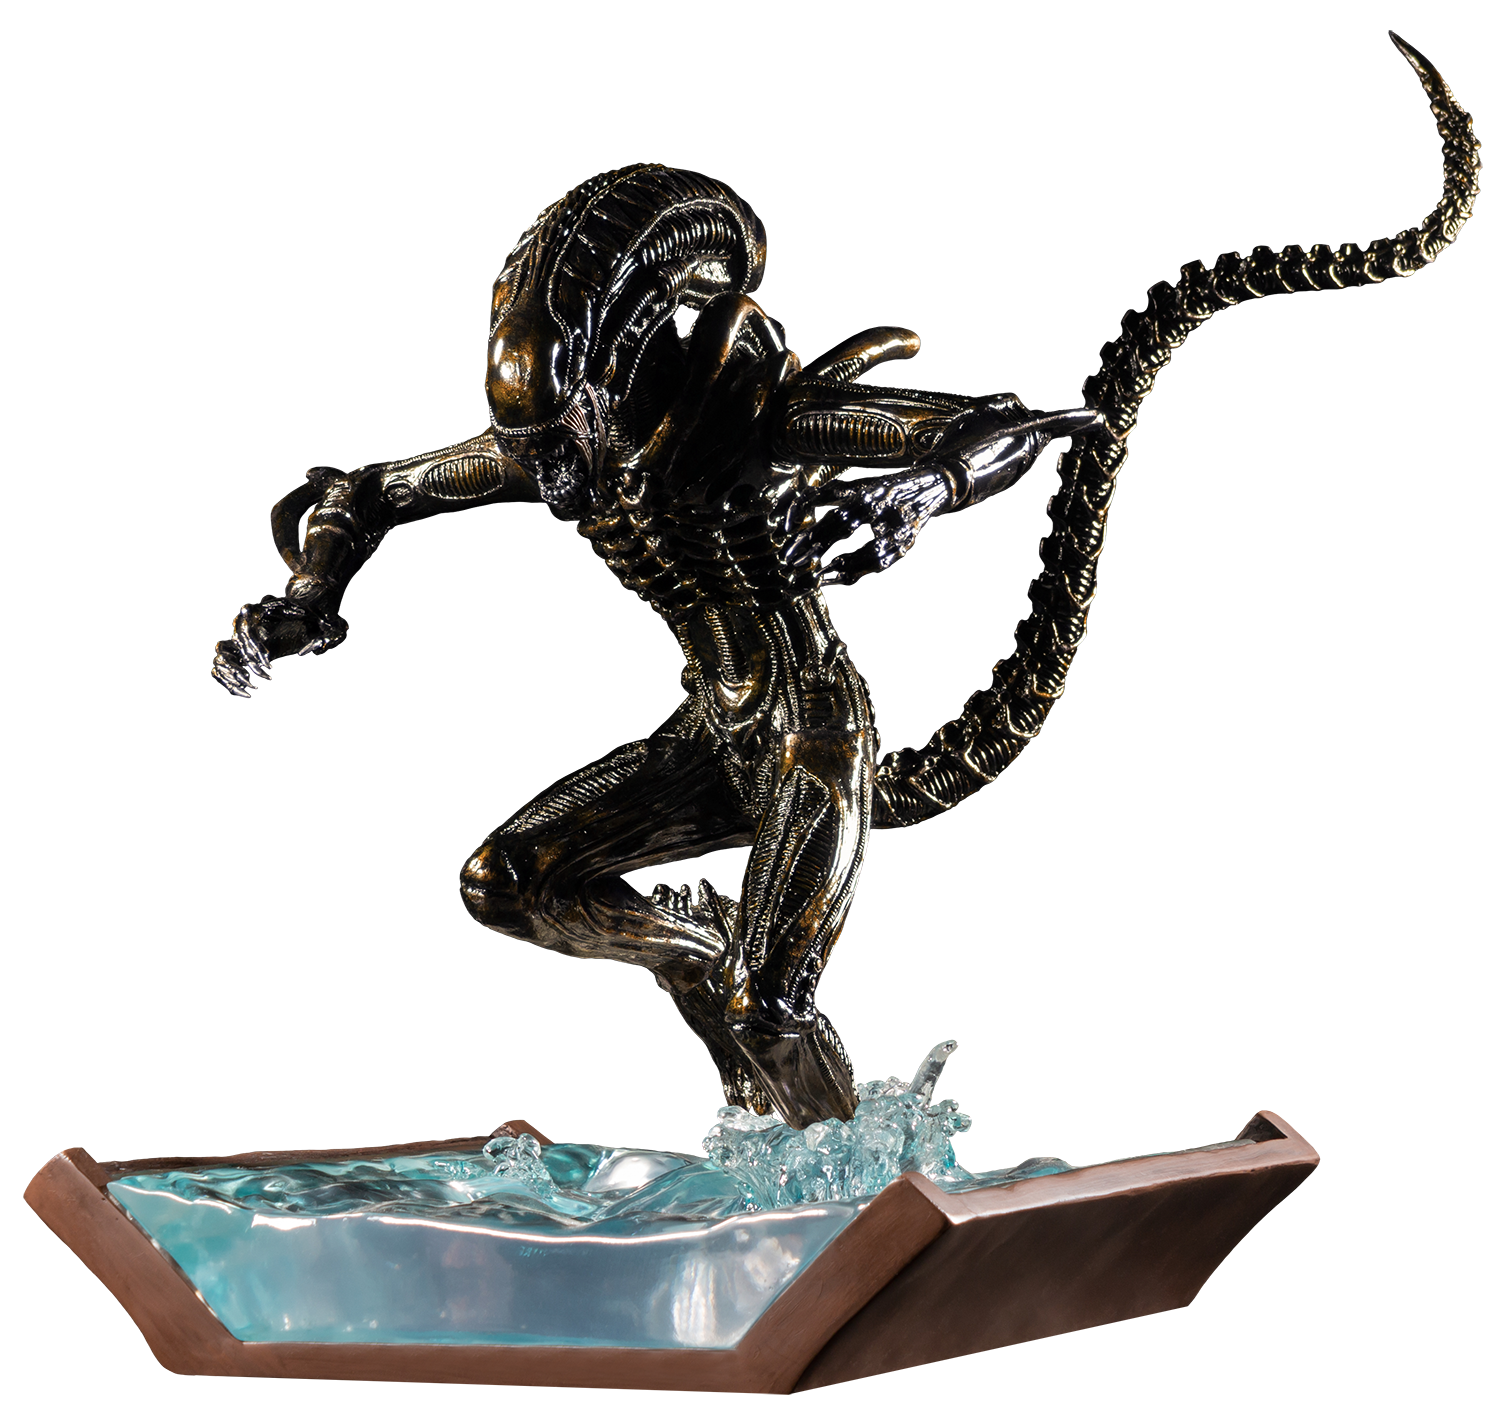 IKO1605-Alien-in-Water-Statue-New-Paint-4-253.png